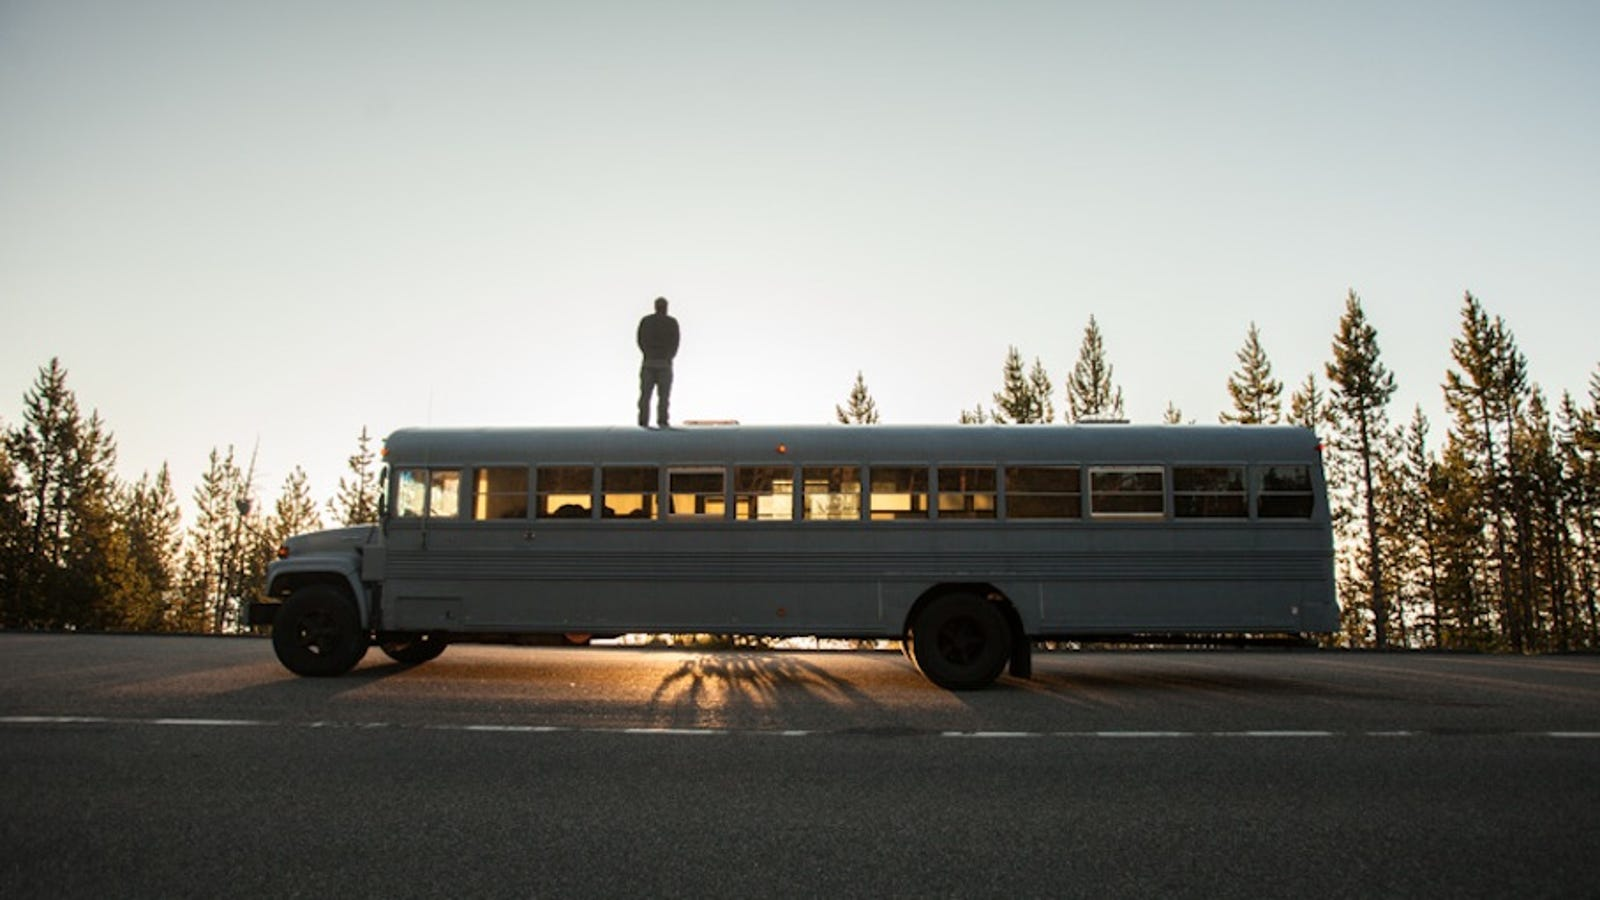 Architecture Student Converts School Bus Into Cozy Home